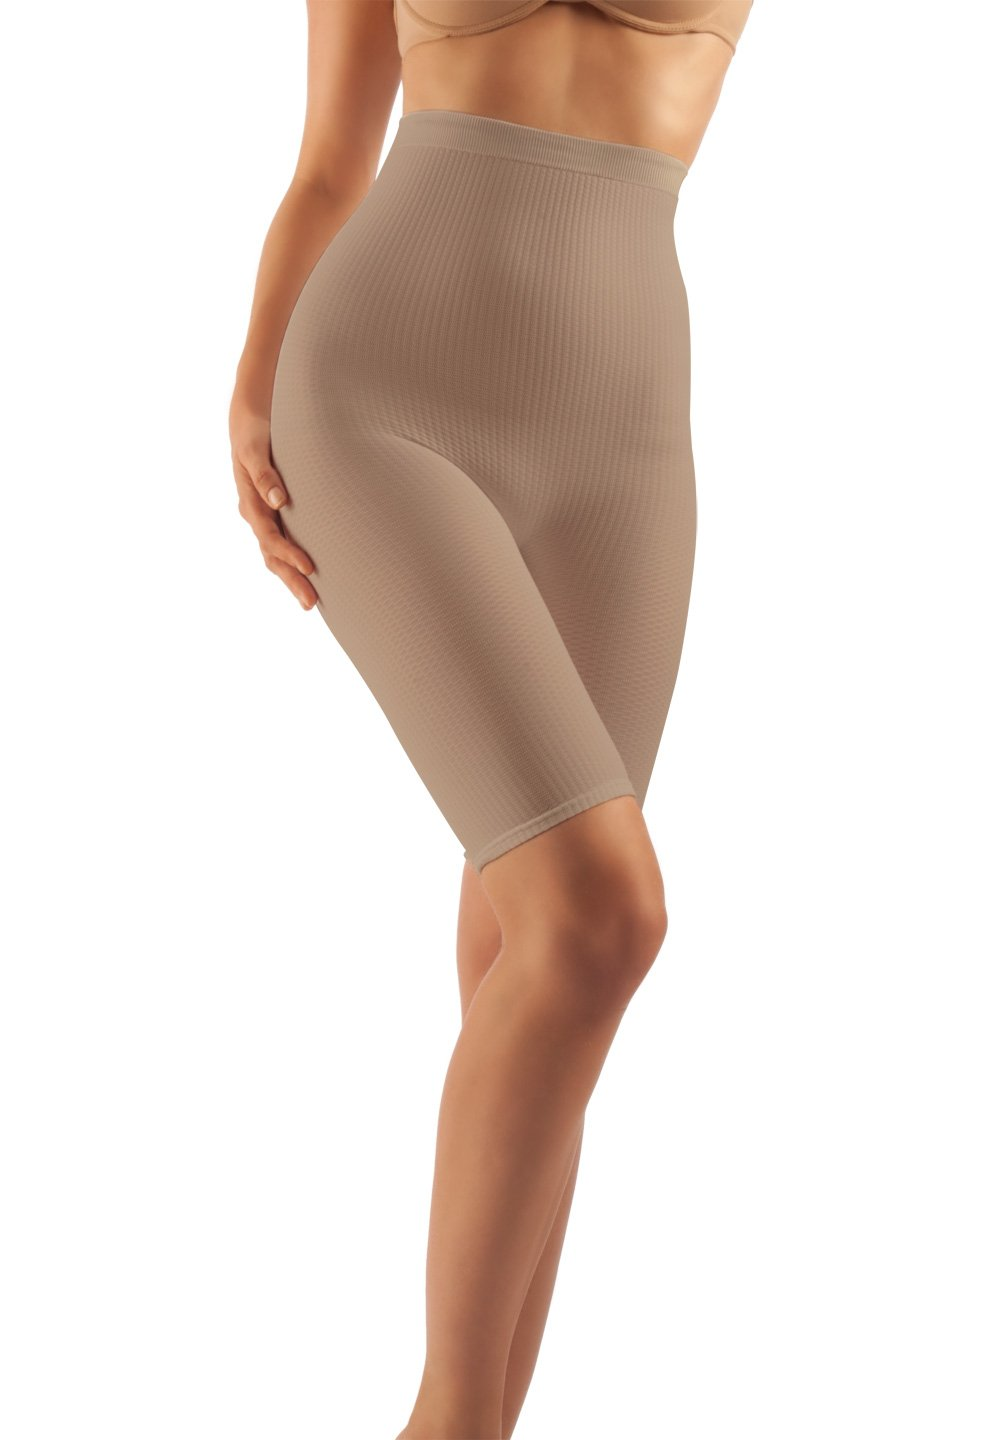 Farmacell 113 Shorts Hohe Taille, massierende und reduzierende Hose, Anti-Cellulite